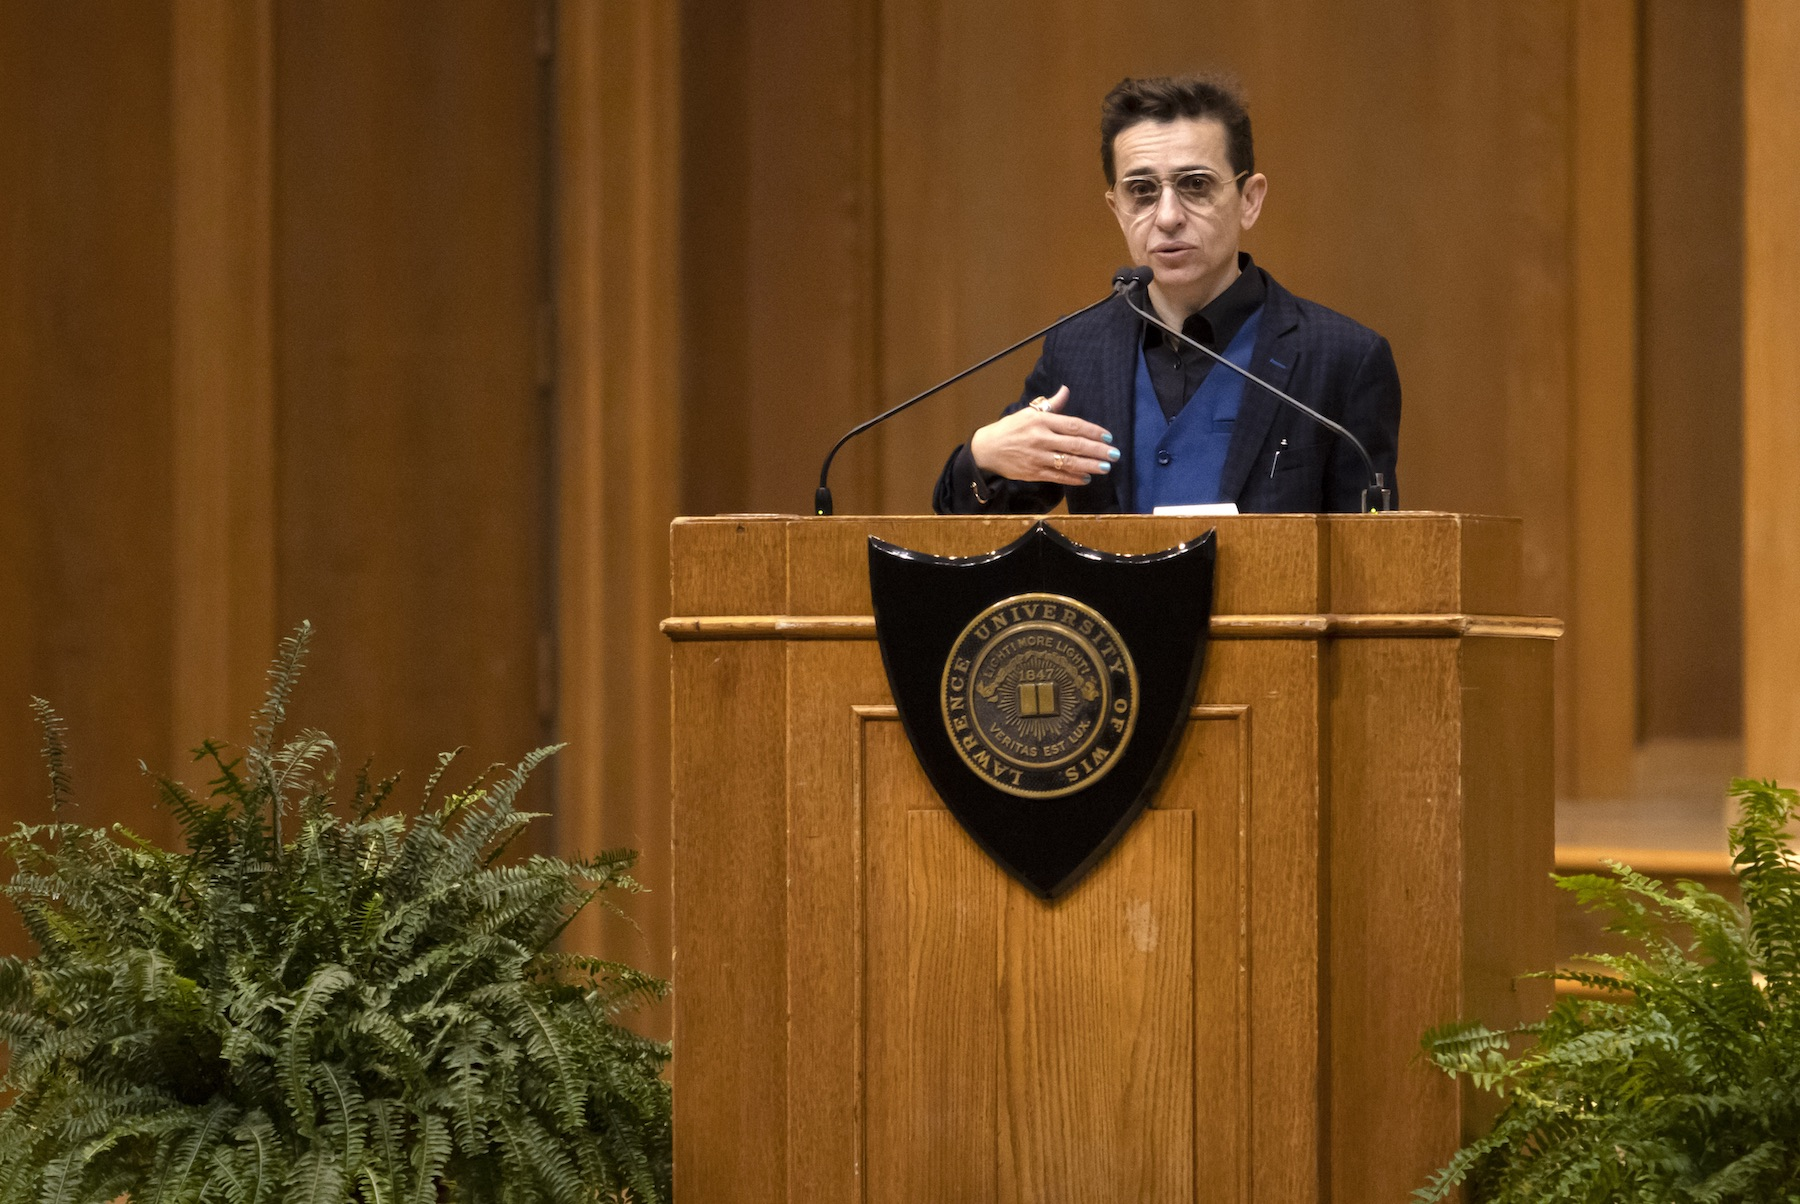 Masha Gessen talks at the podium on the stage of Memorial Chapel during Thursday's convocation.